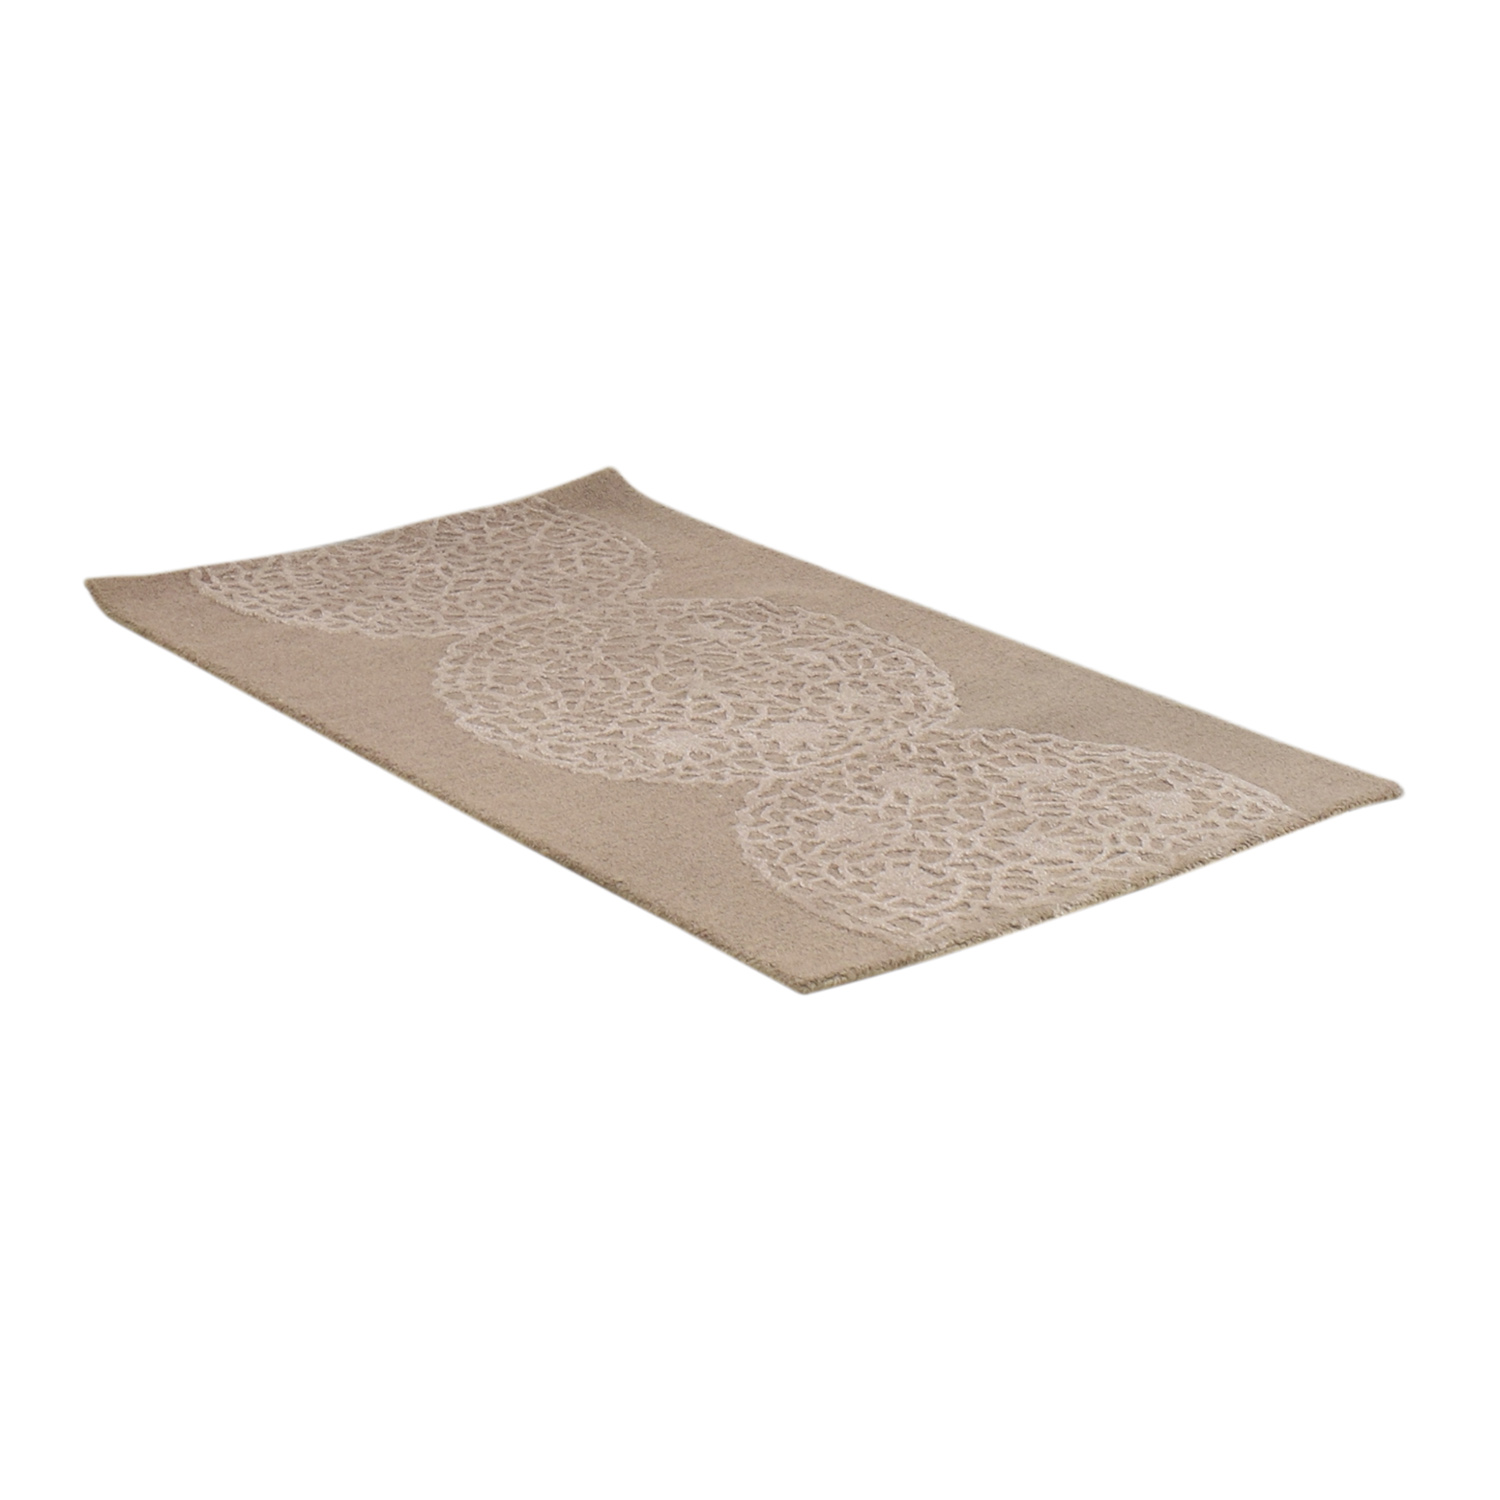 Wayfair Rizzy Home Rug / Decor